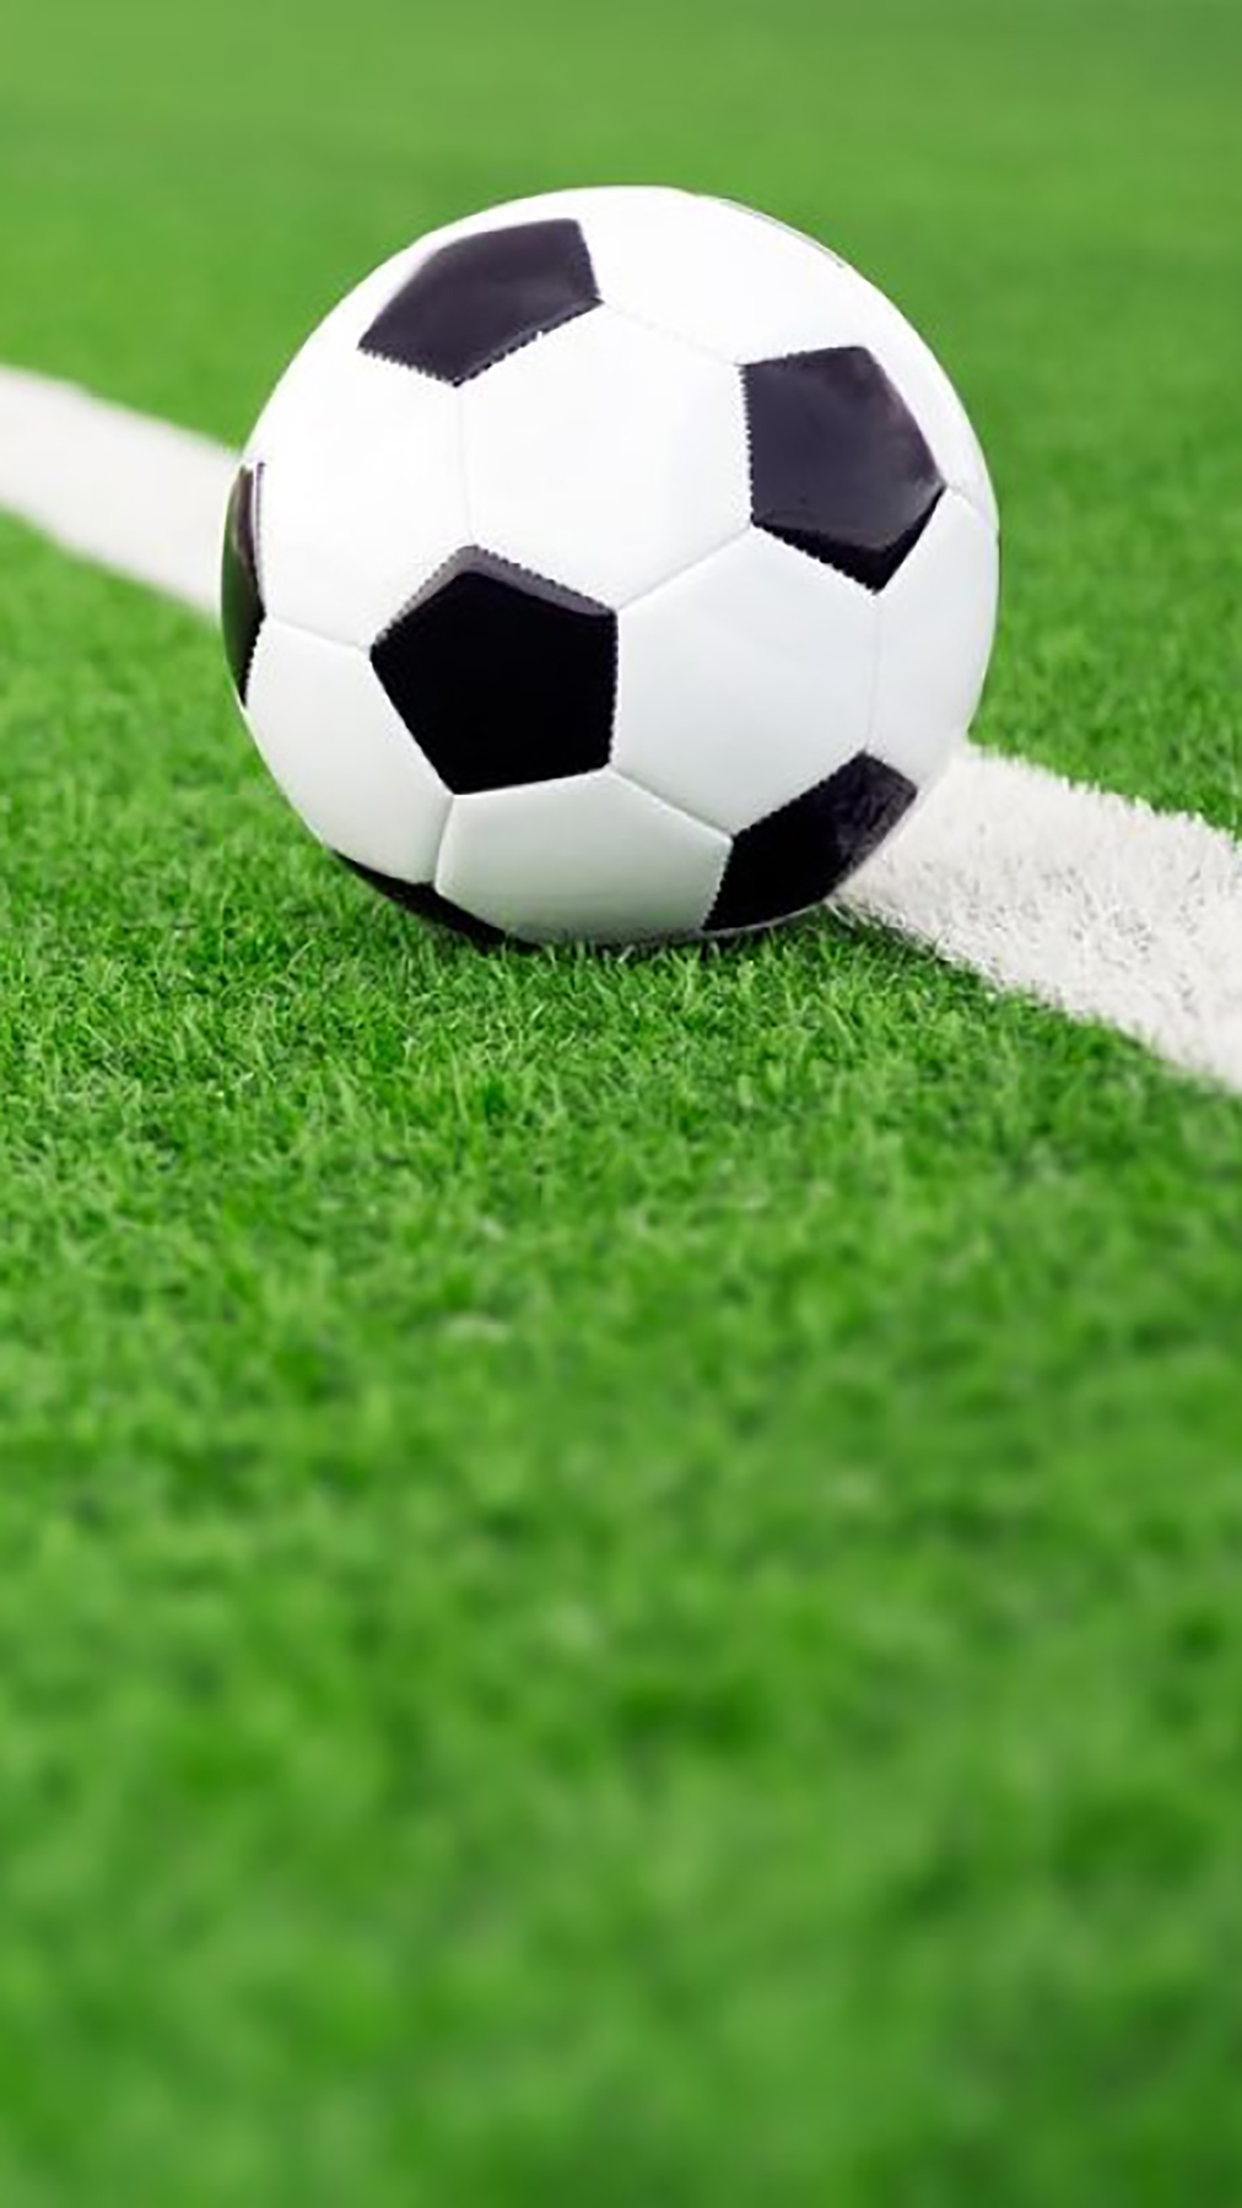 Soccer Ball : 2 Wallpaper for iPhone X, 8, 7, 6 - Free ... Soccer Backgrounds For Iphone